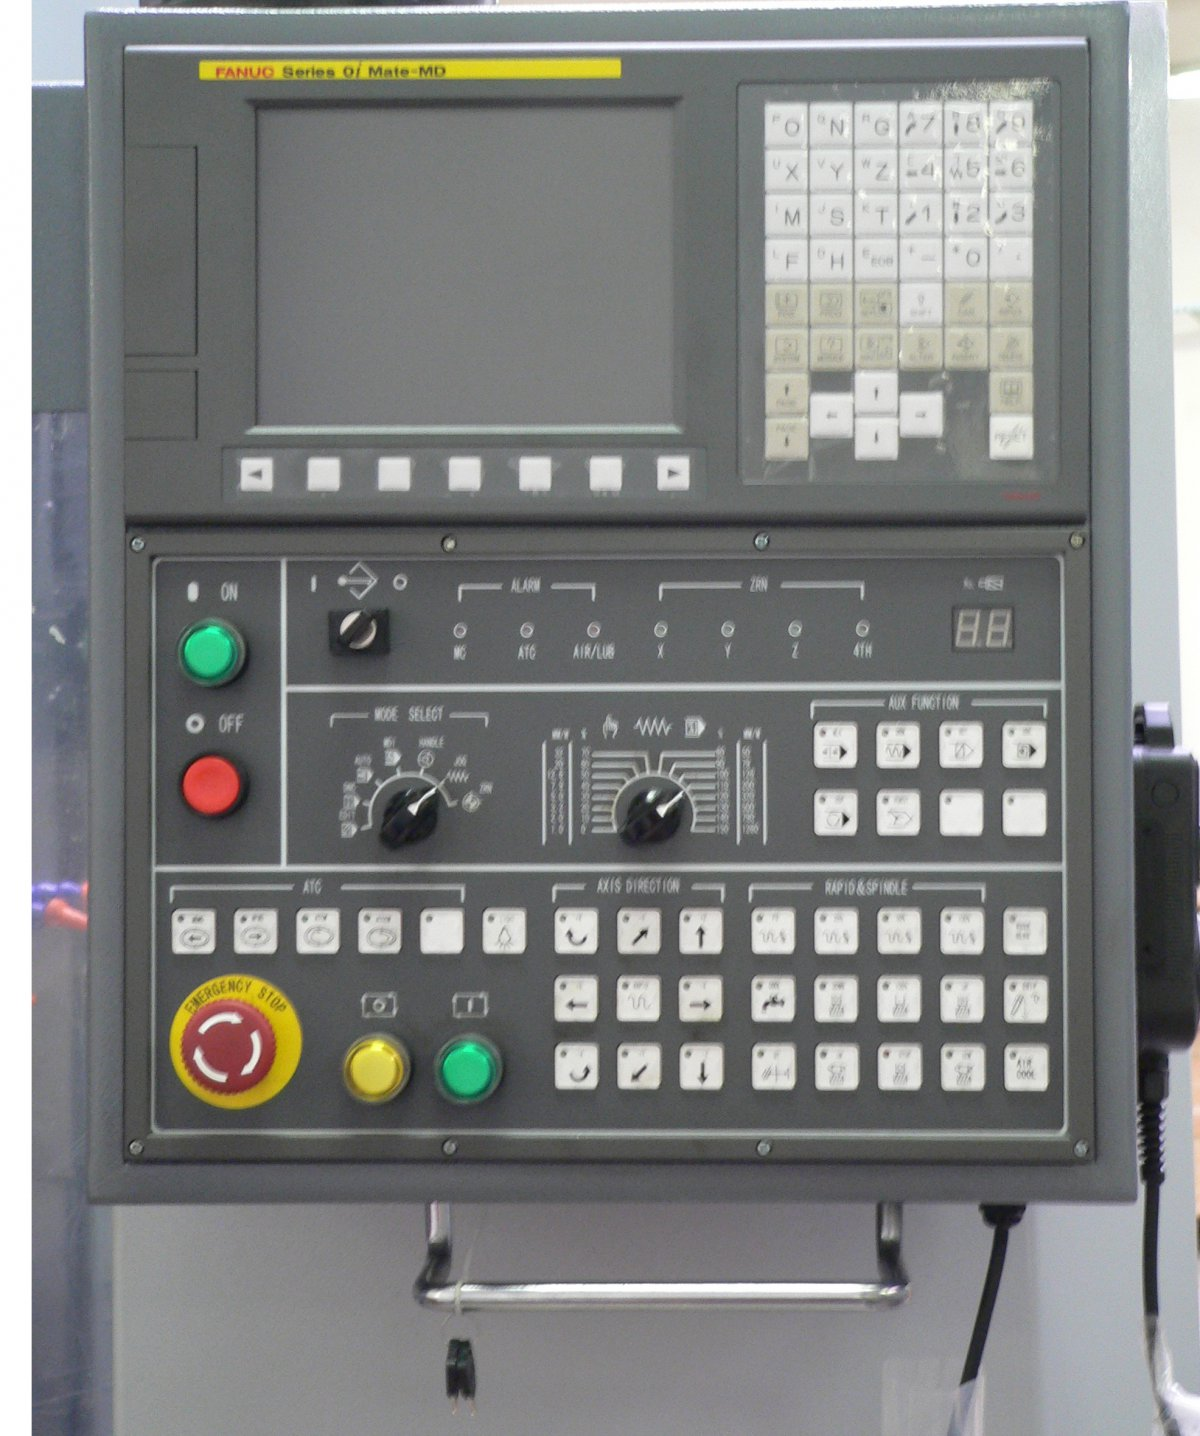 Fanuc ot programming manual